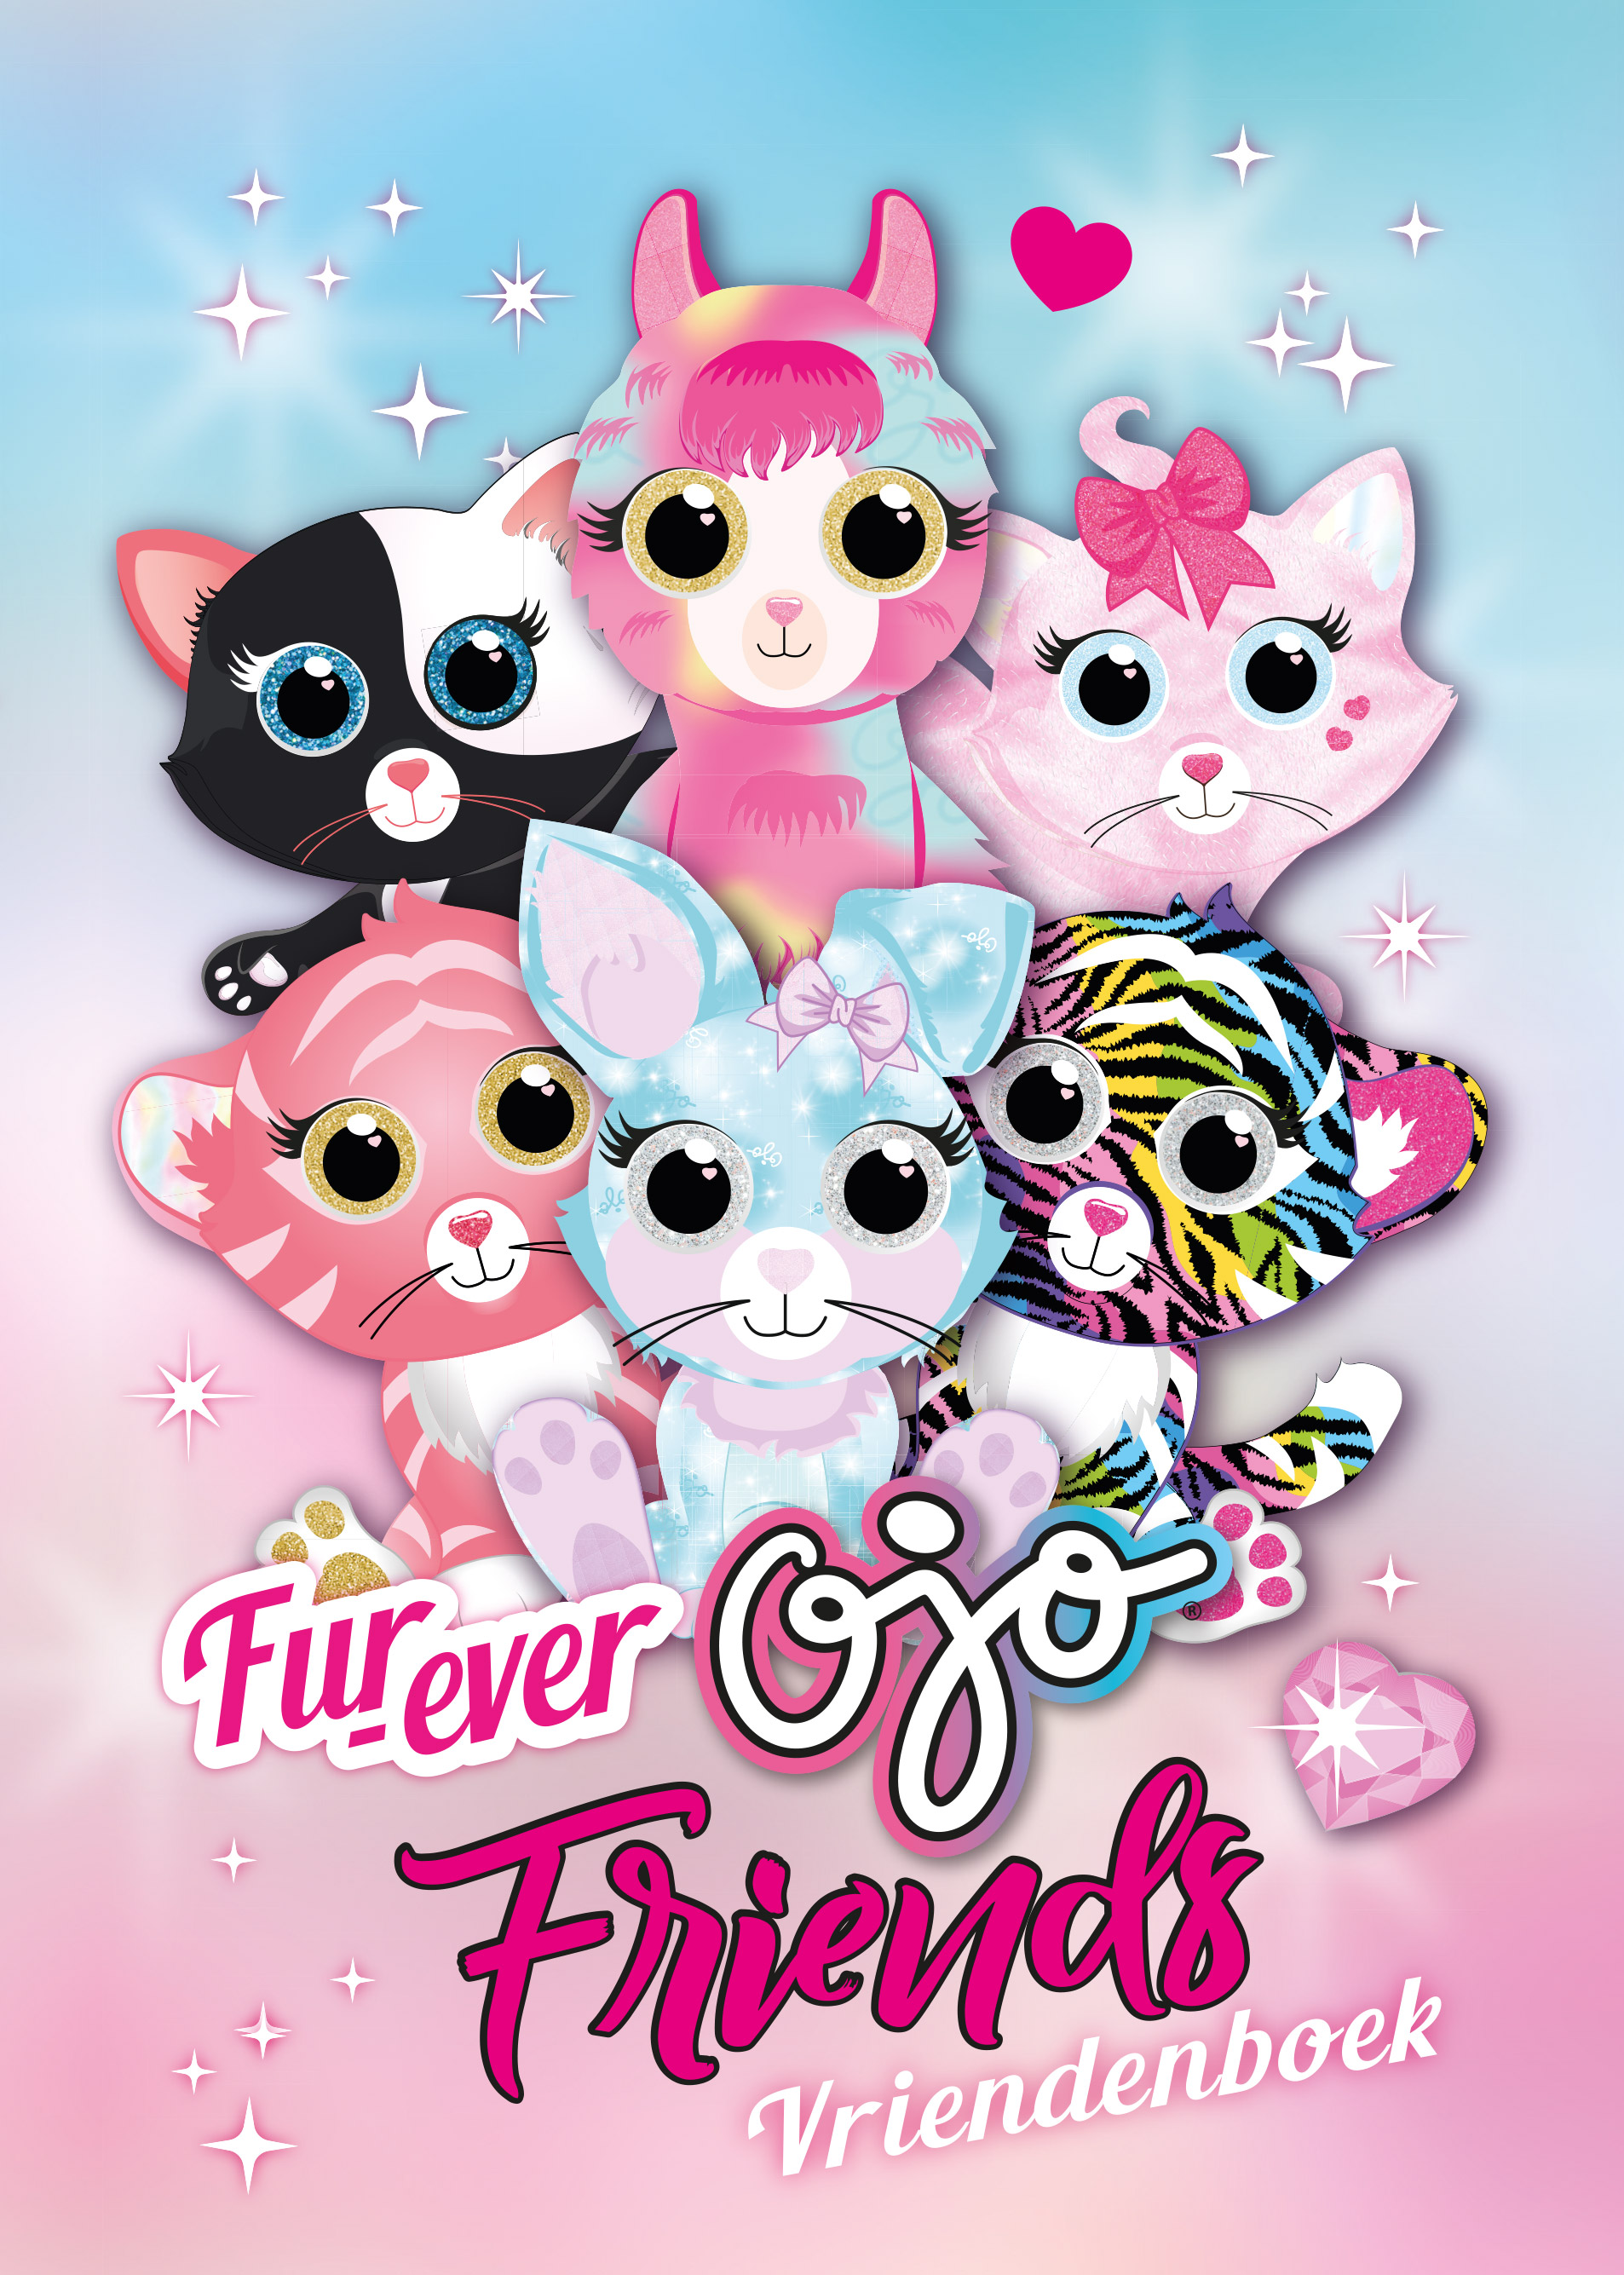 Ojo fur-ever friends vriendenboek